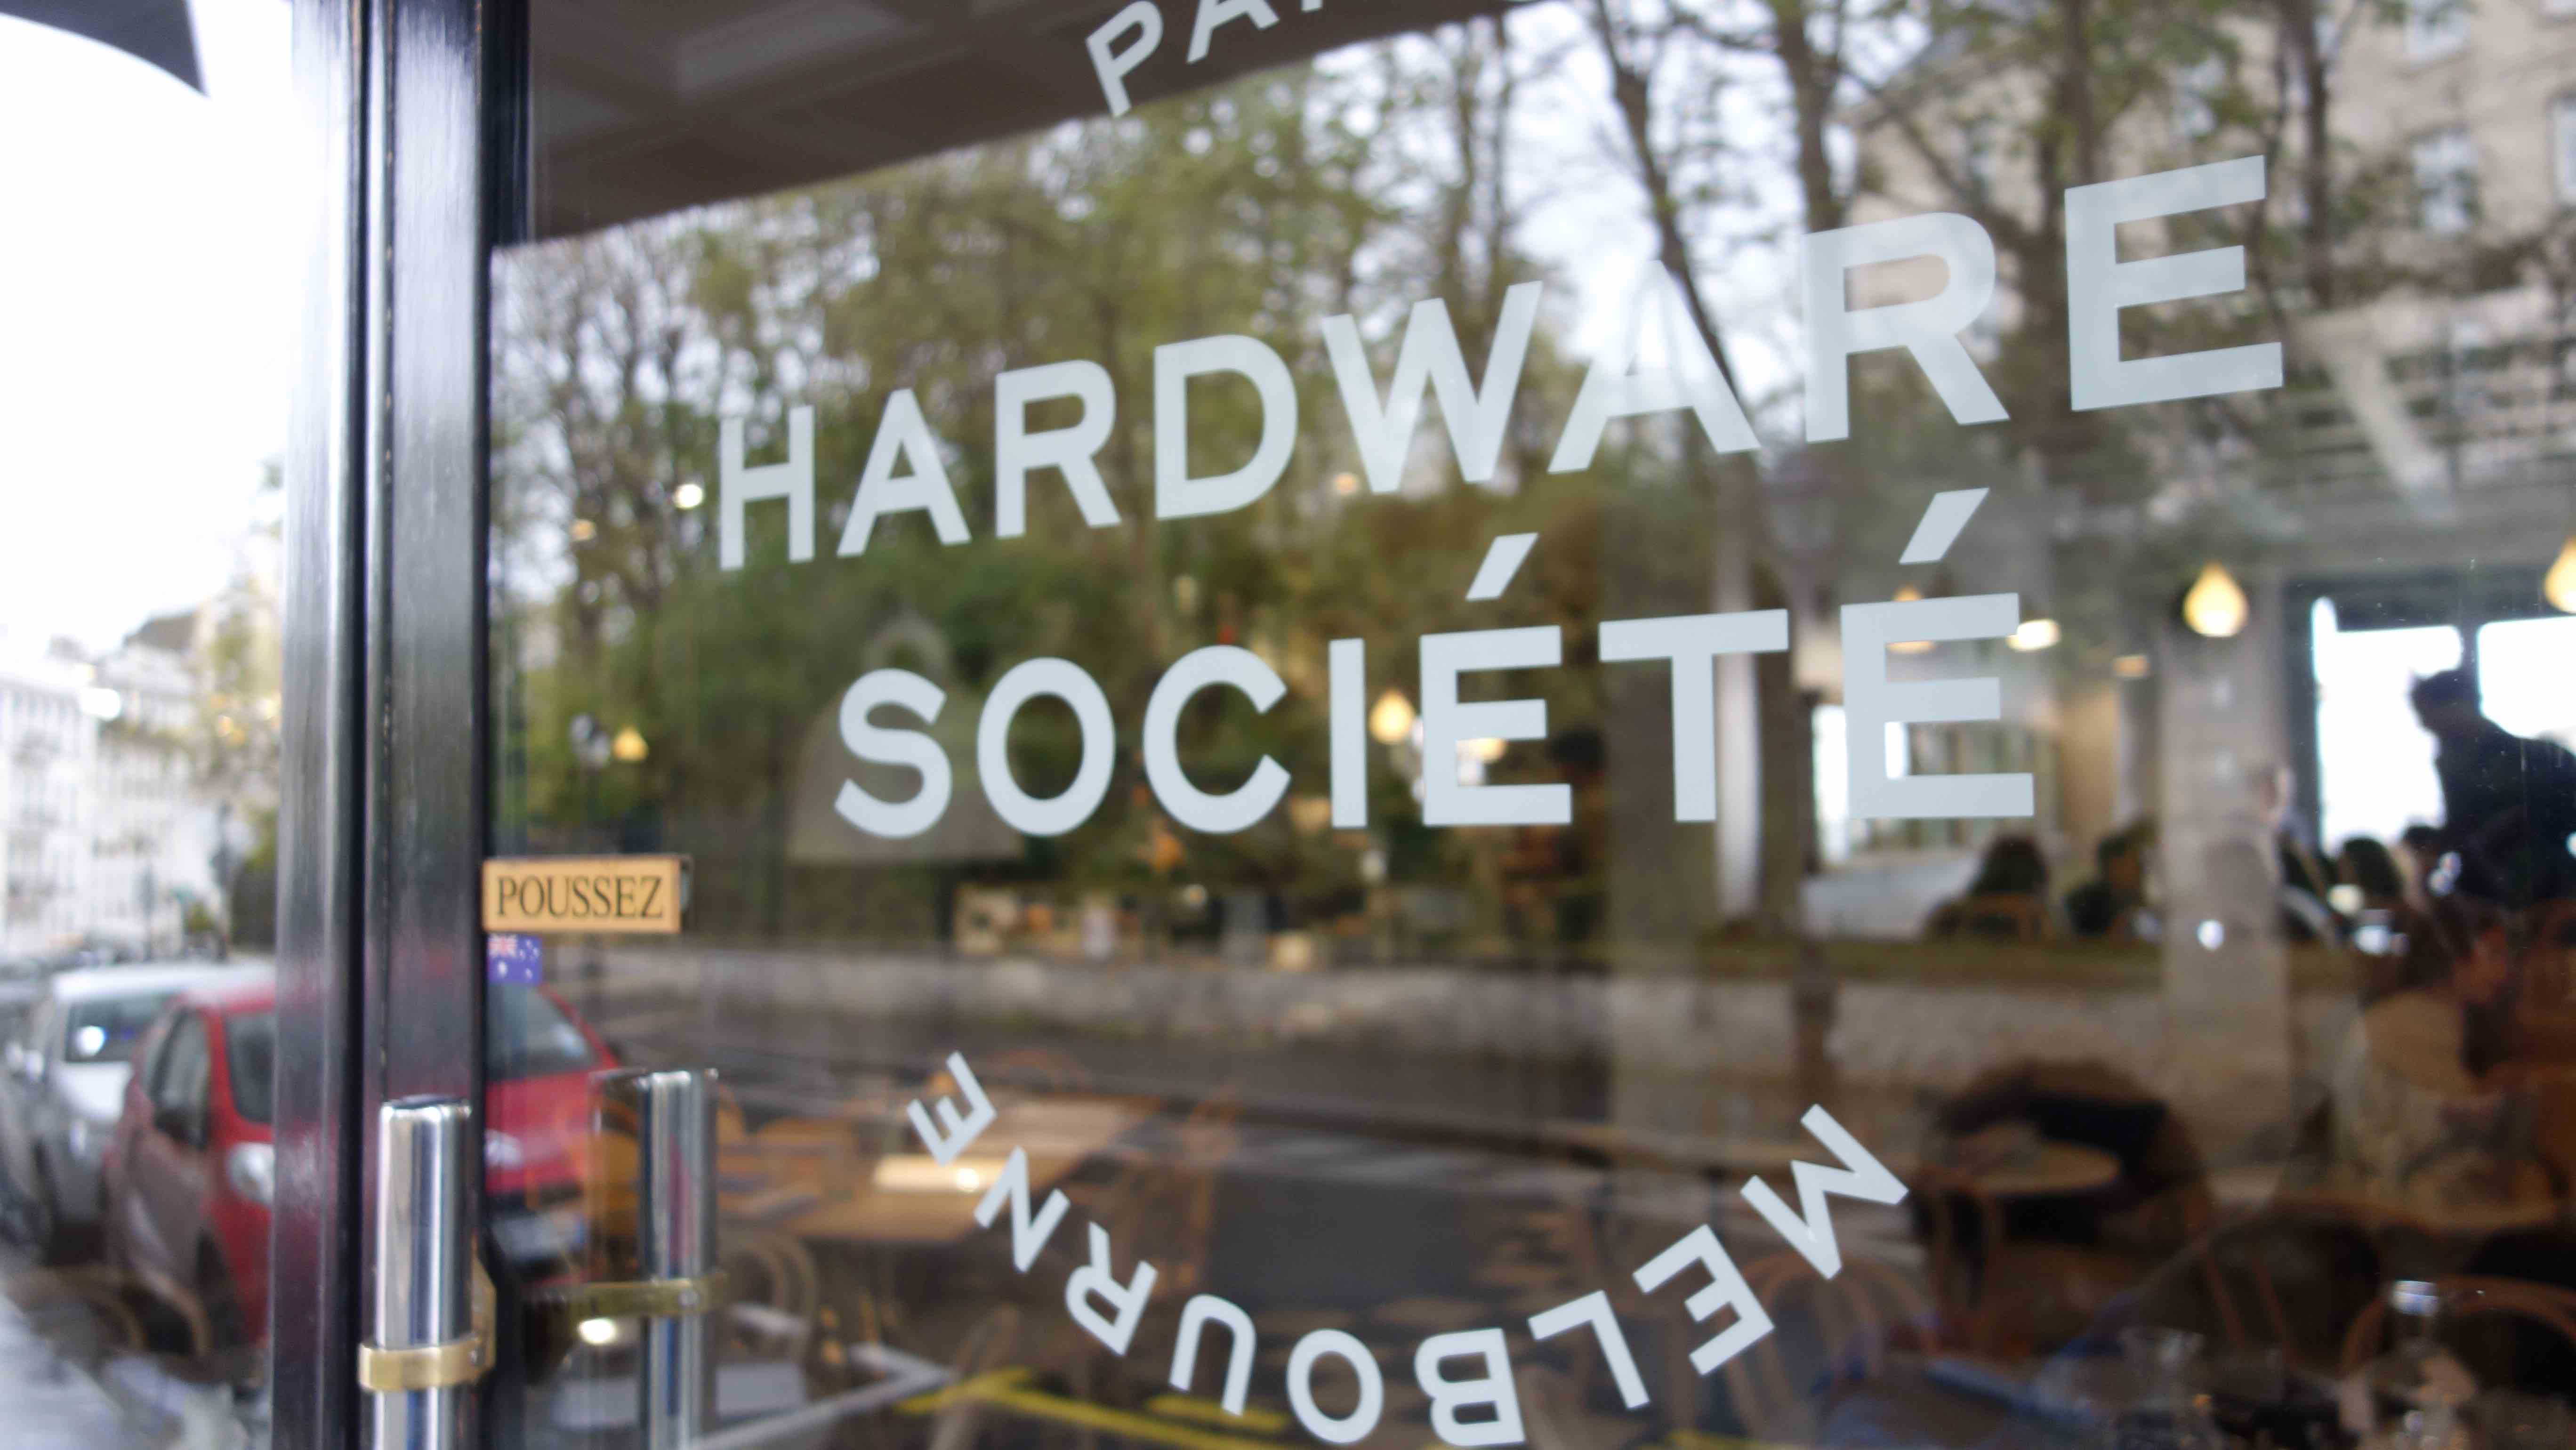 hardware societe photos paris